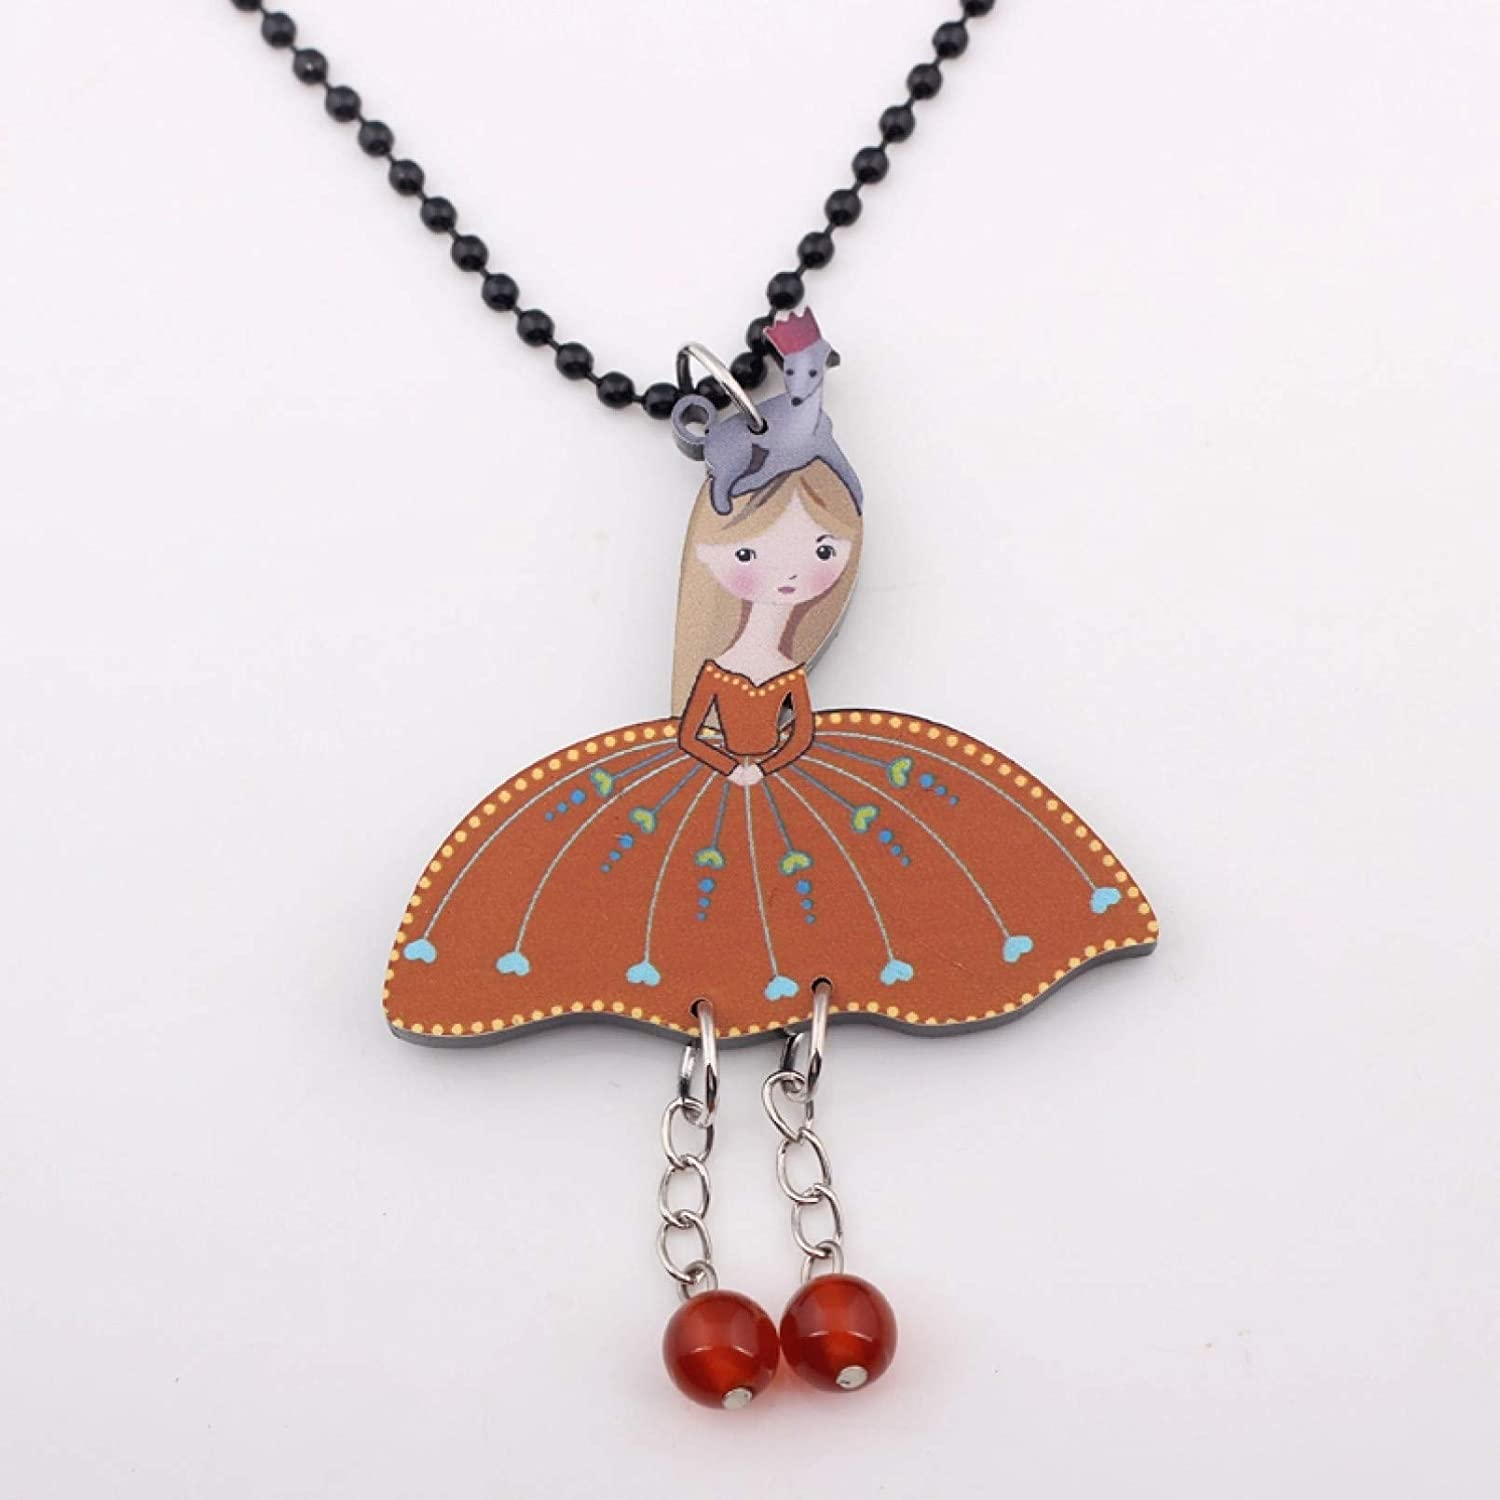 N/A Necklace Pendant Angel Girls New Collar & Pendant Necklace Colorful for Girl Lovely Cute Figure Acrylic Women Jewelry Fairy Wings Christmas Birthday Gift